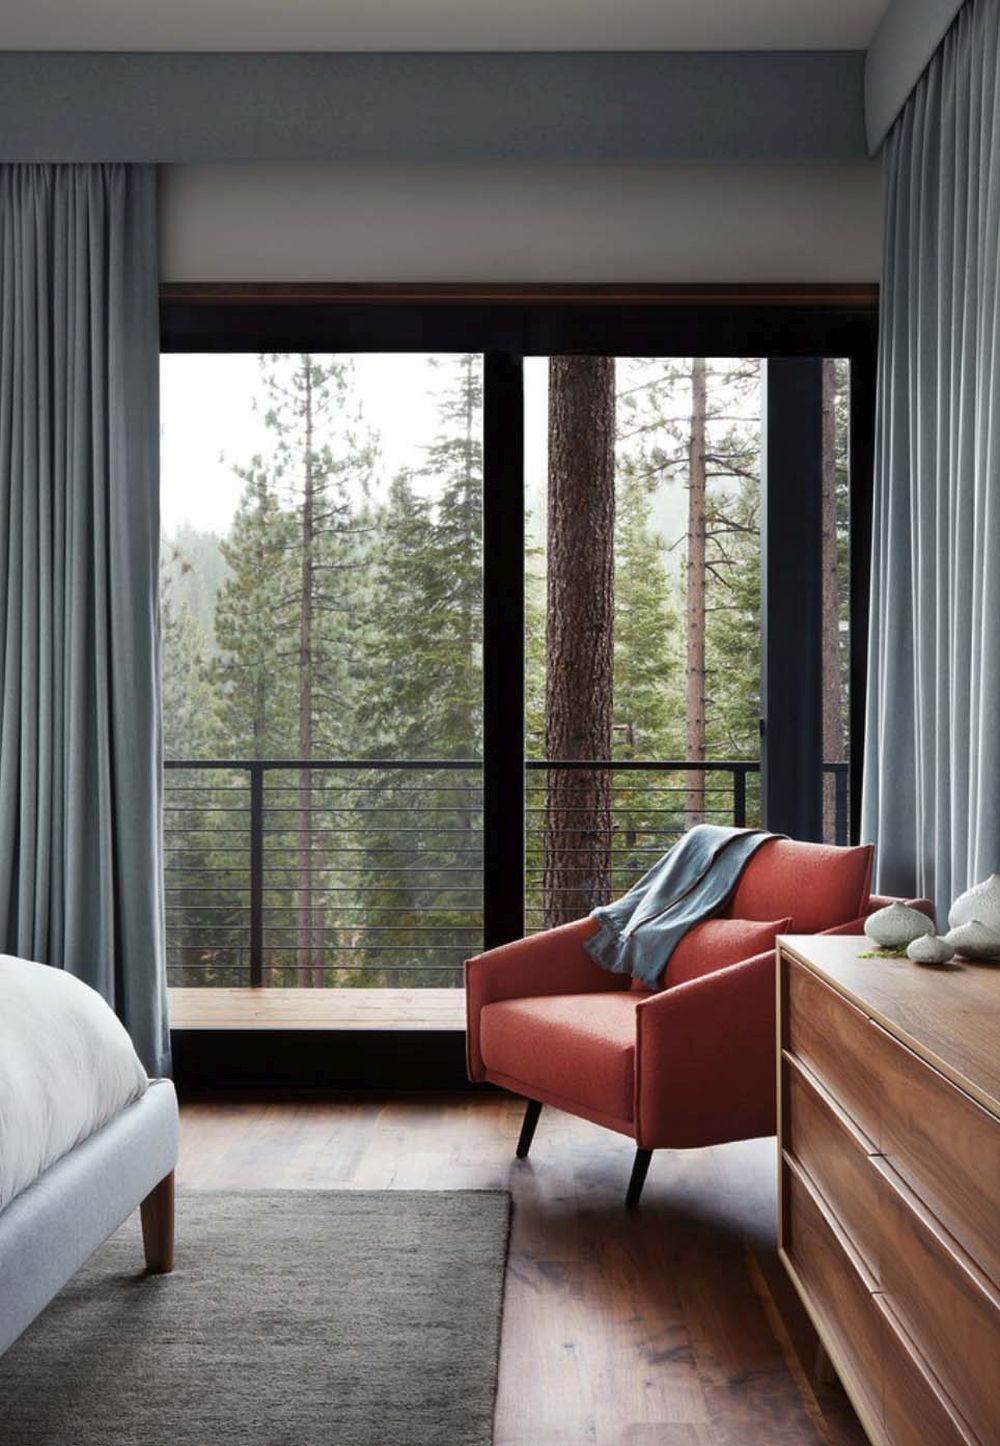 The armchair in the corner of the bedroom overlooks the valley and gives the room a sense of completion